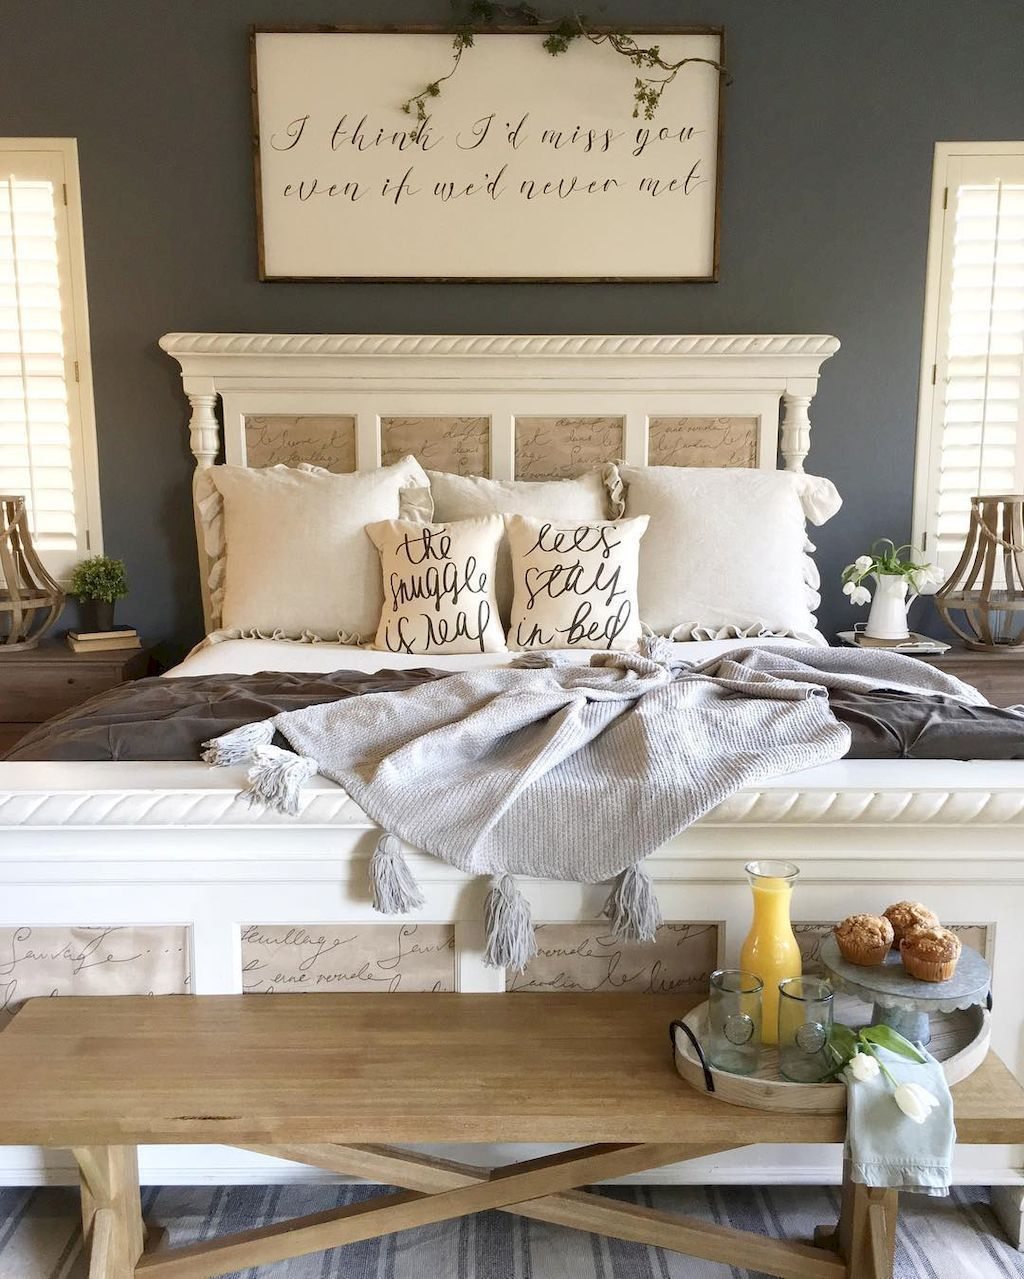 farmhouse room decor rustic farmhouse bedroom bedroom decor pinterest farmhouse Rustic farmhouse master bedroom design u0026 decor ideas (26)